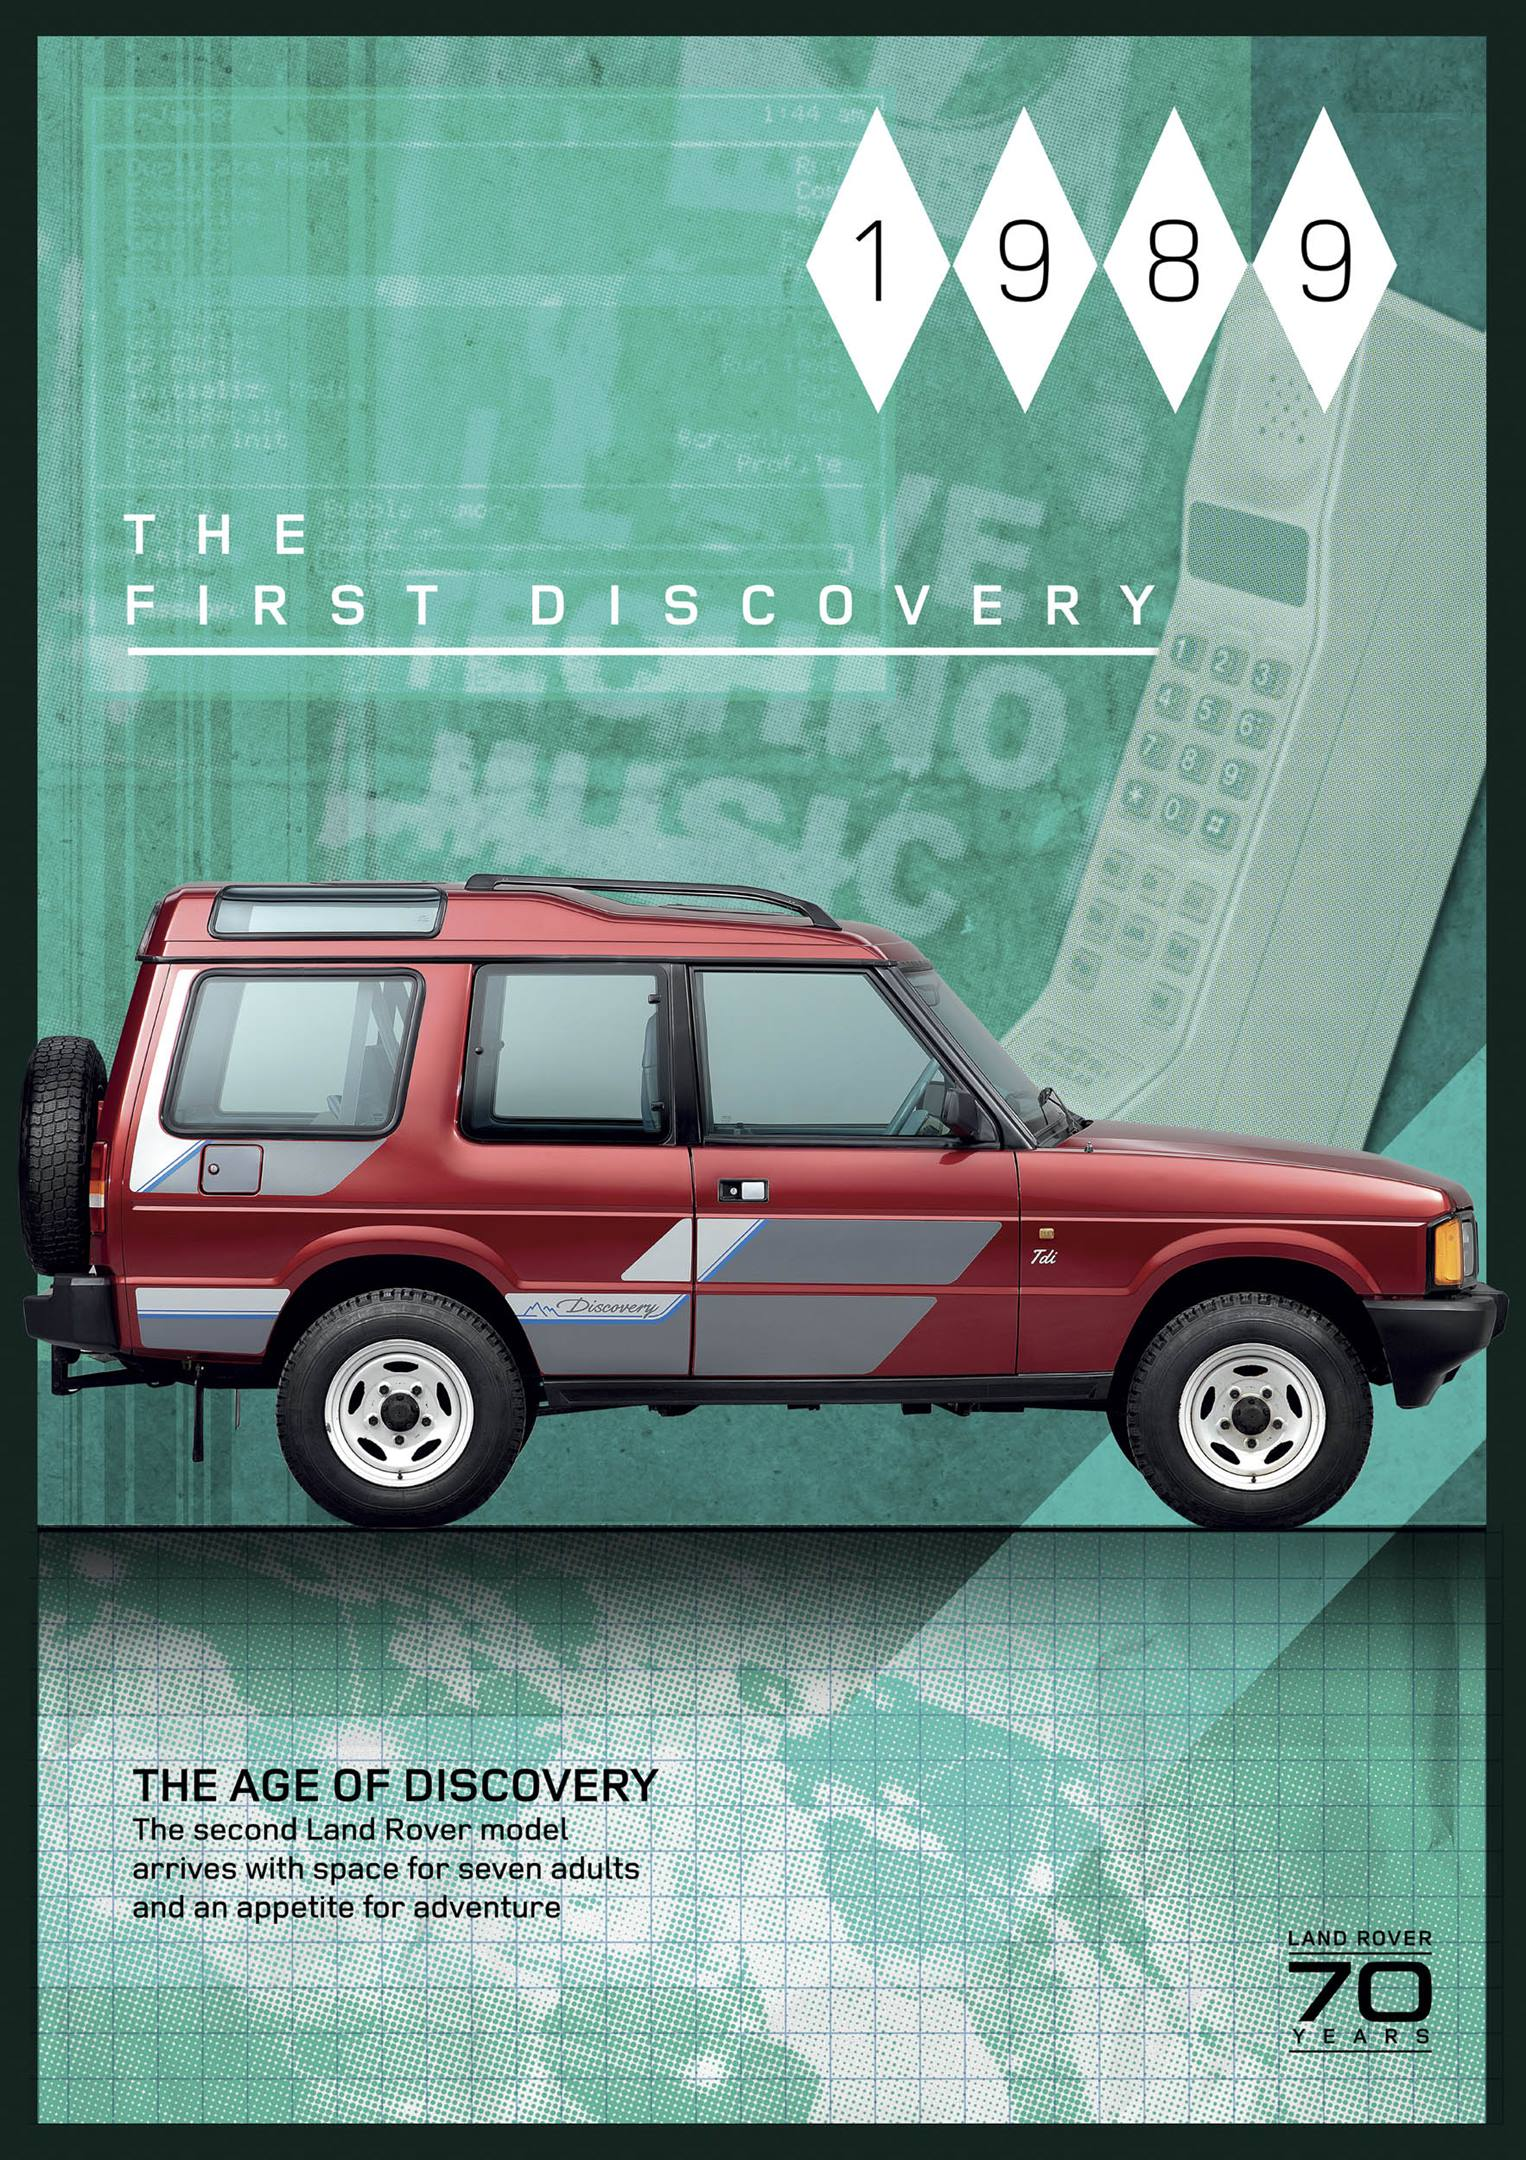 1989 Land Rover Discovery poster